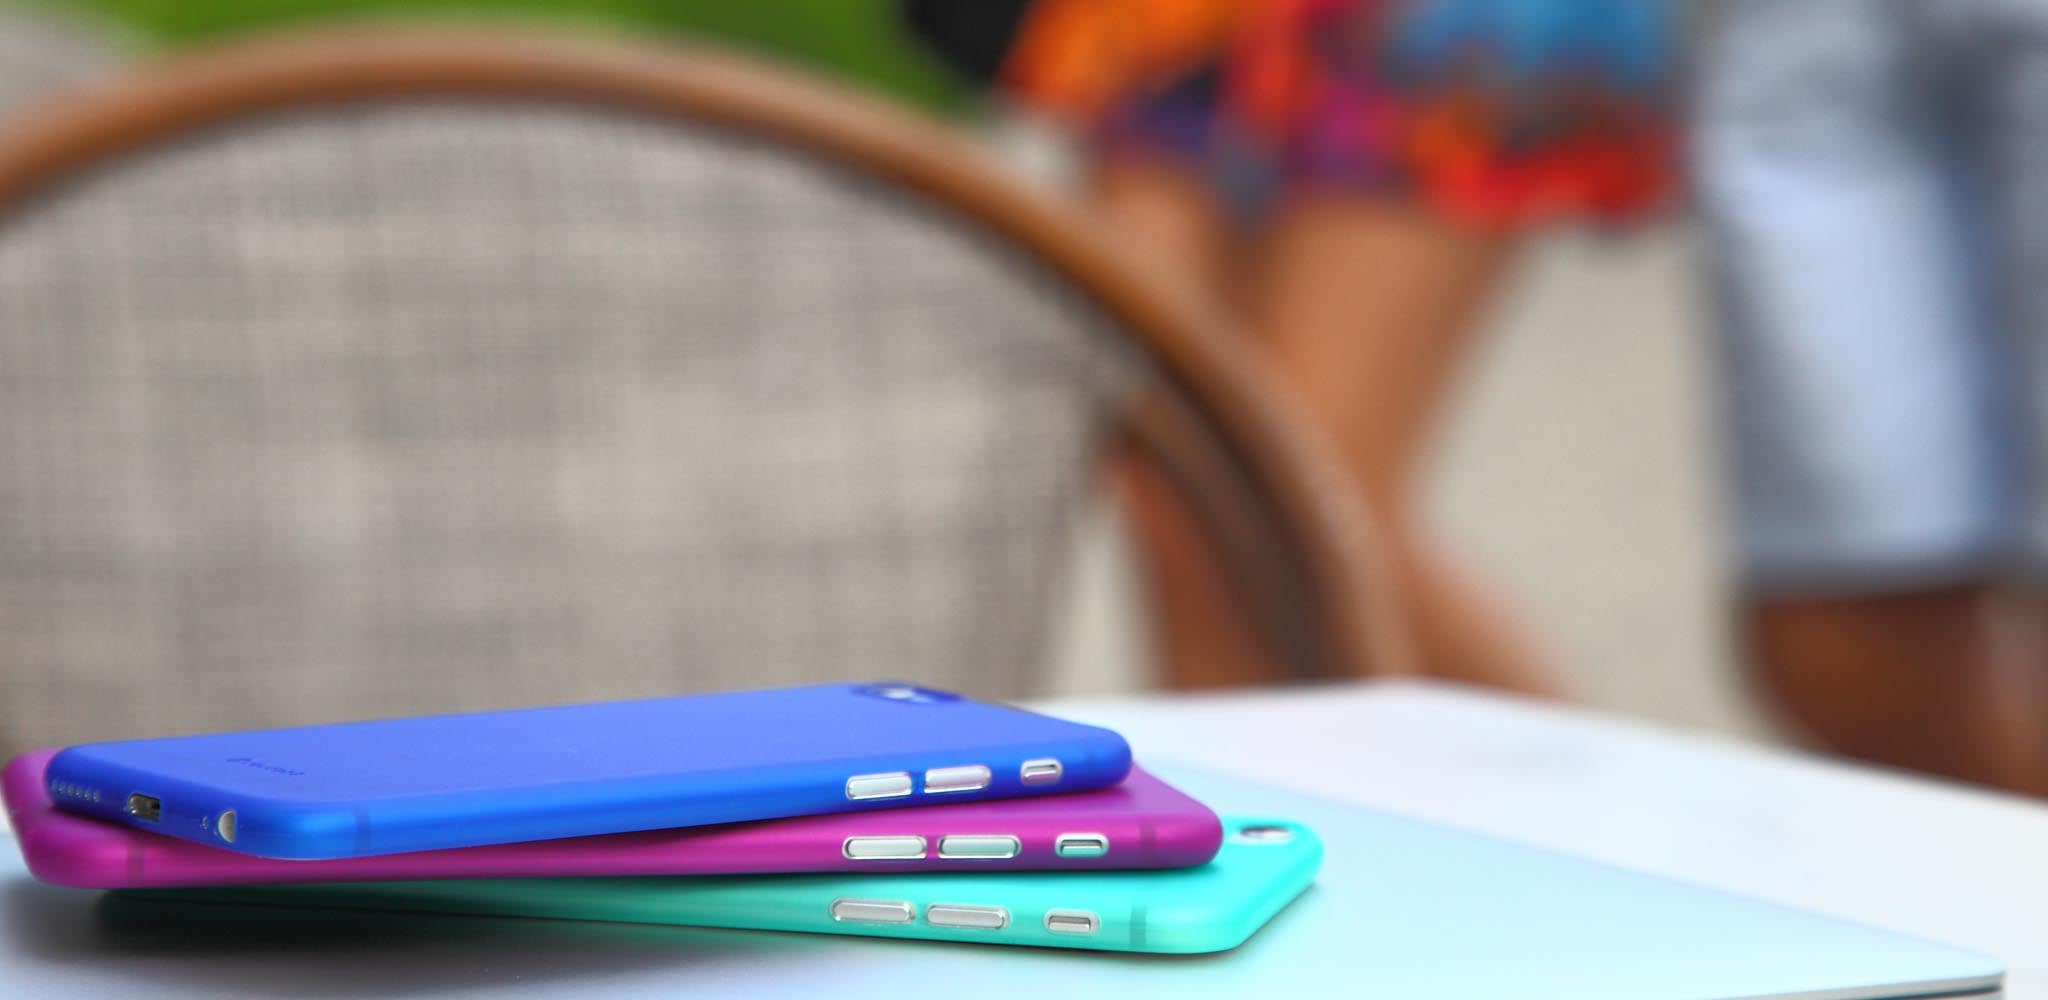 Veil XT | Ultra thin iPhone 6 case | Multicolor